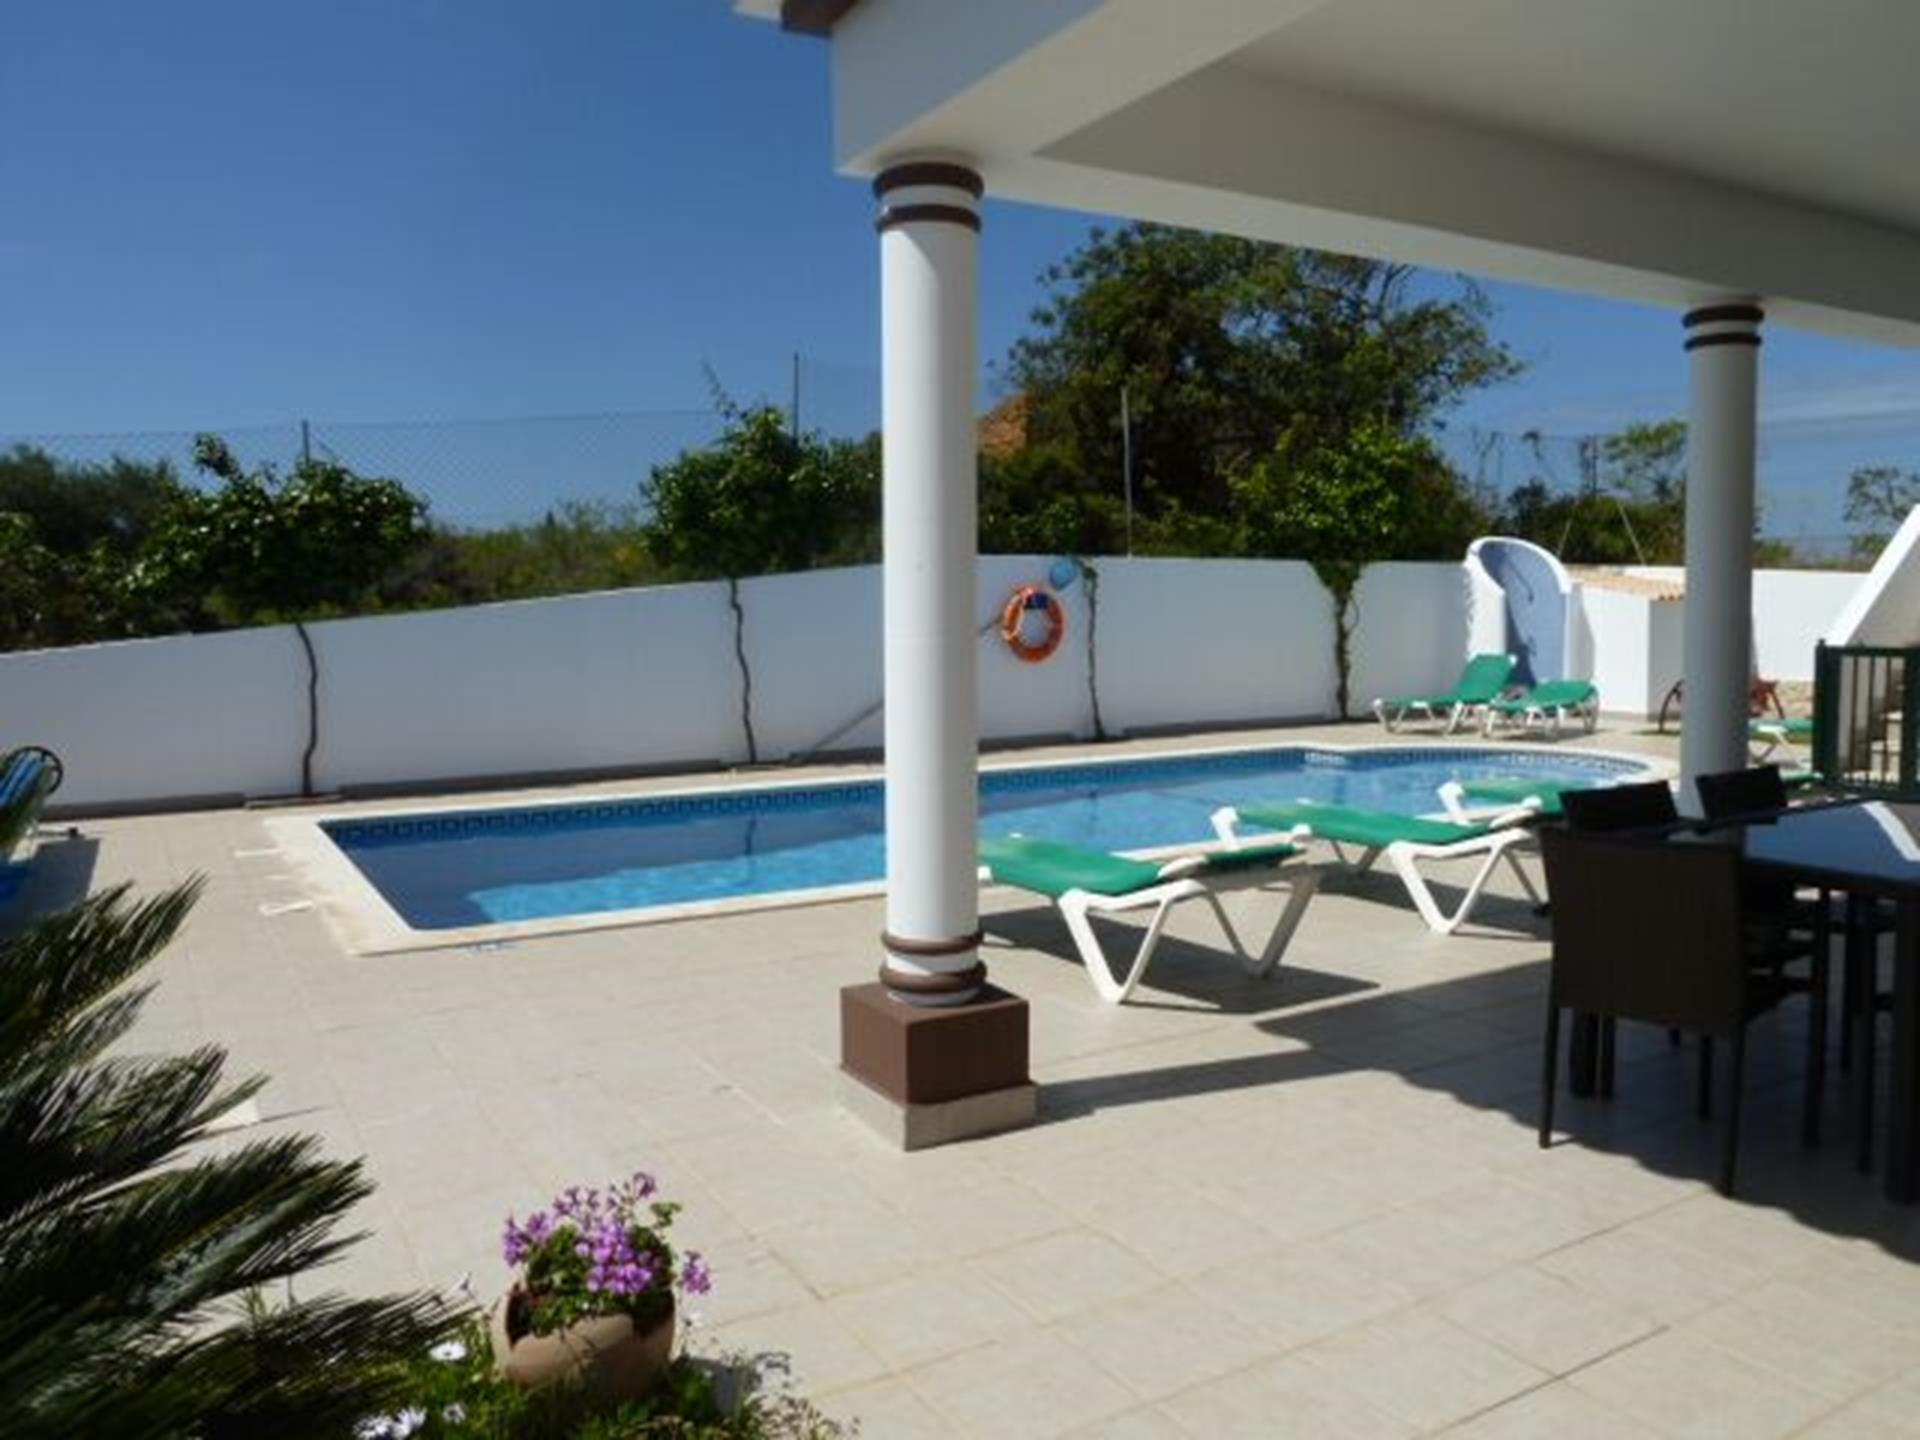 All round great views of this superb, spacious 4 bedroom quality villa.